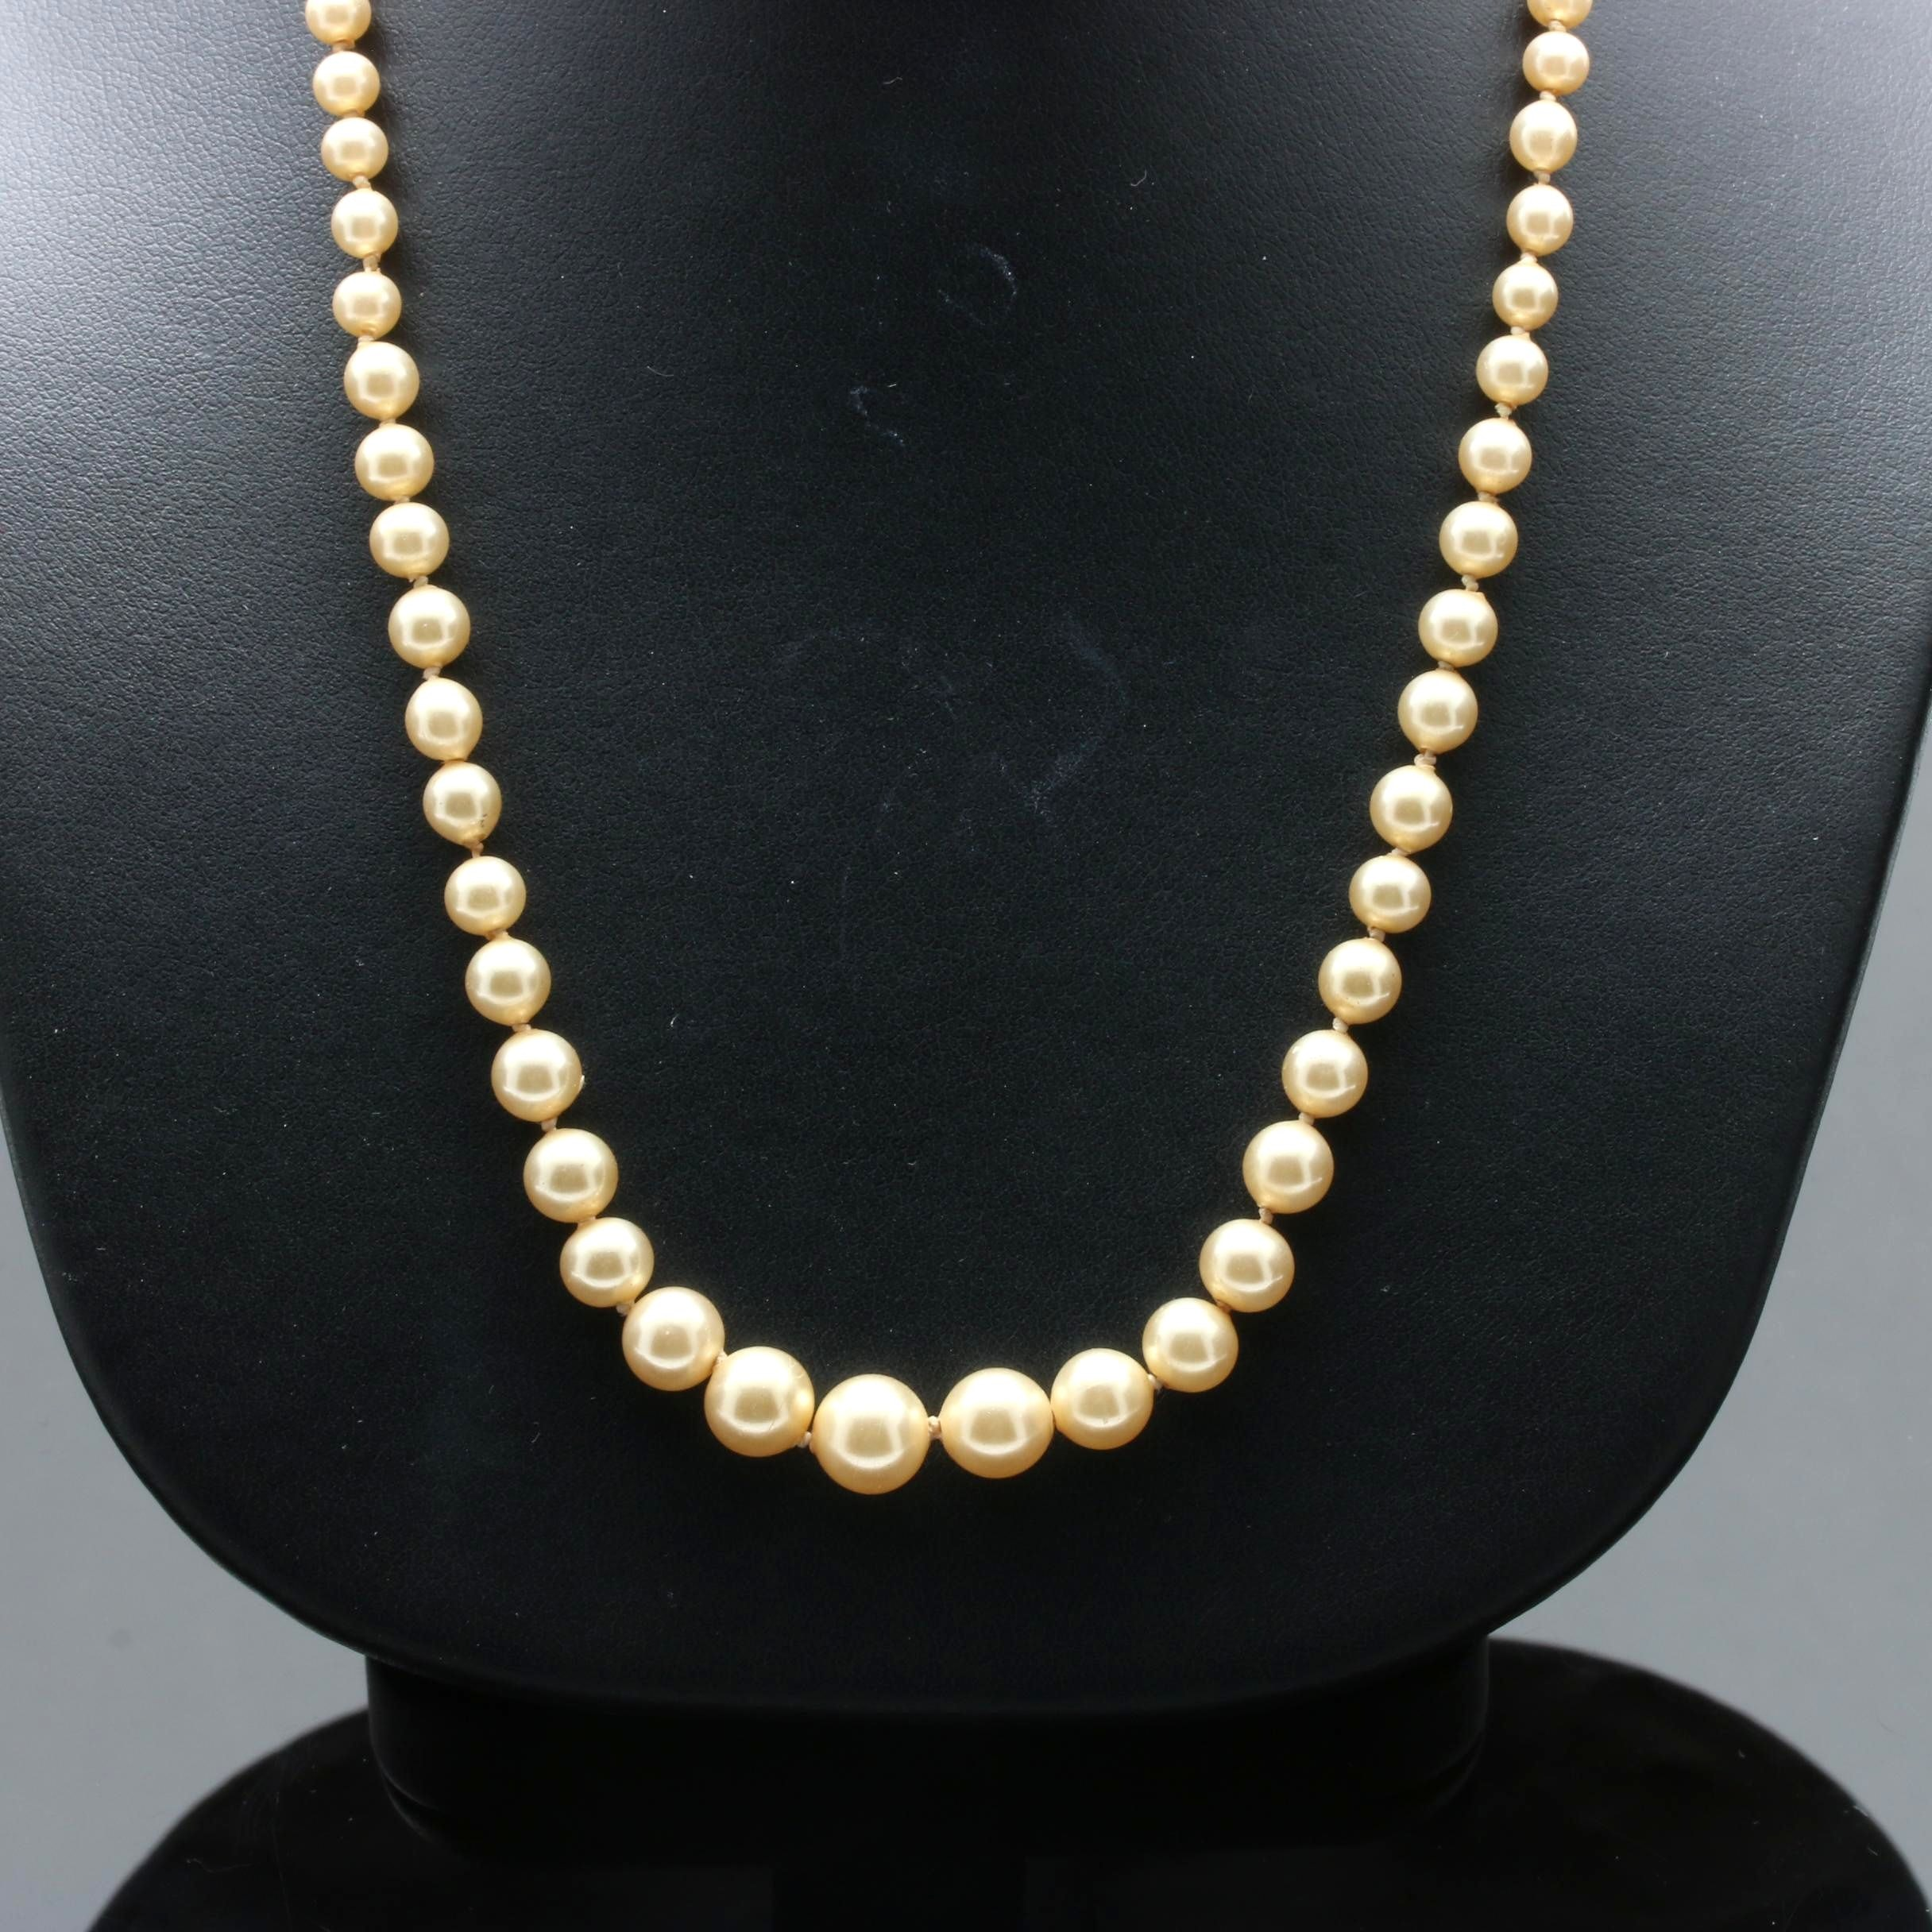 10K White Gold Imitation Pearl Necklace